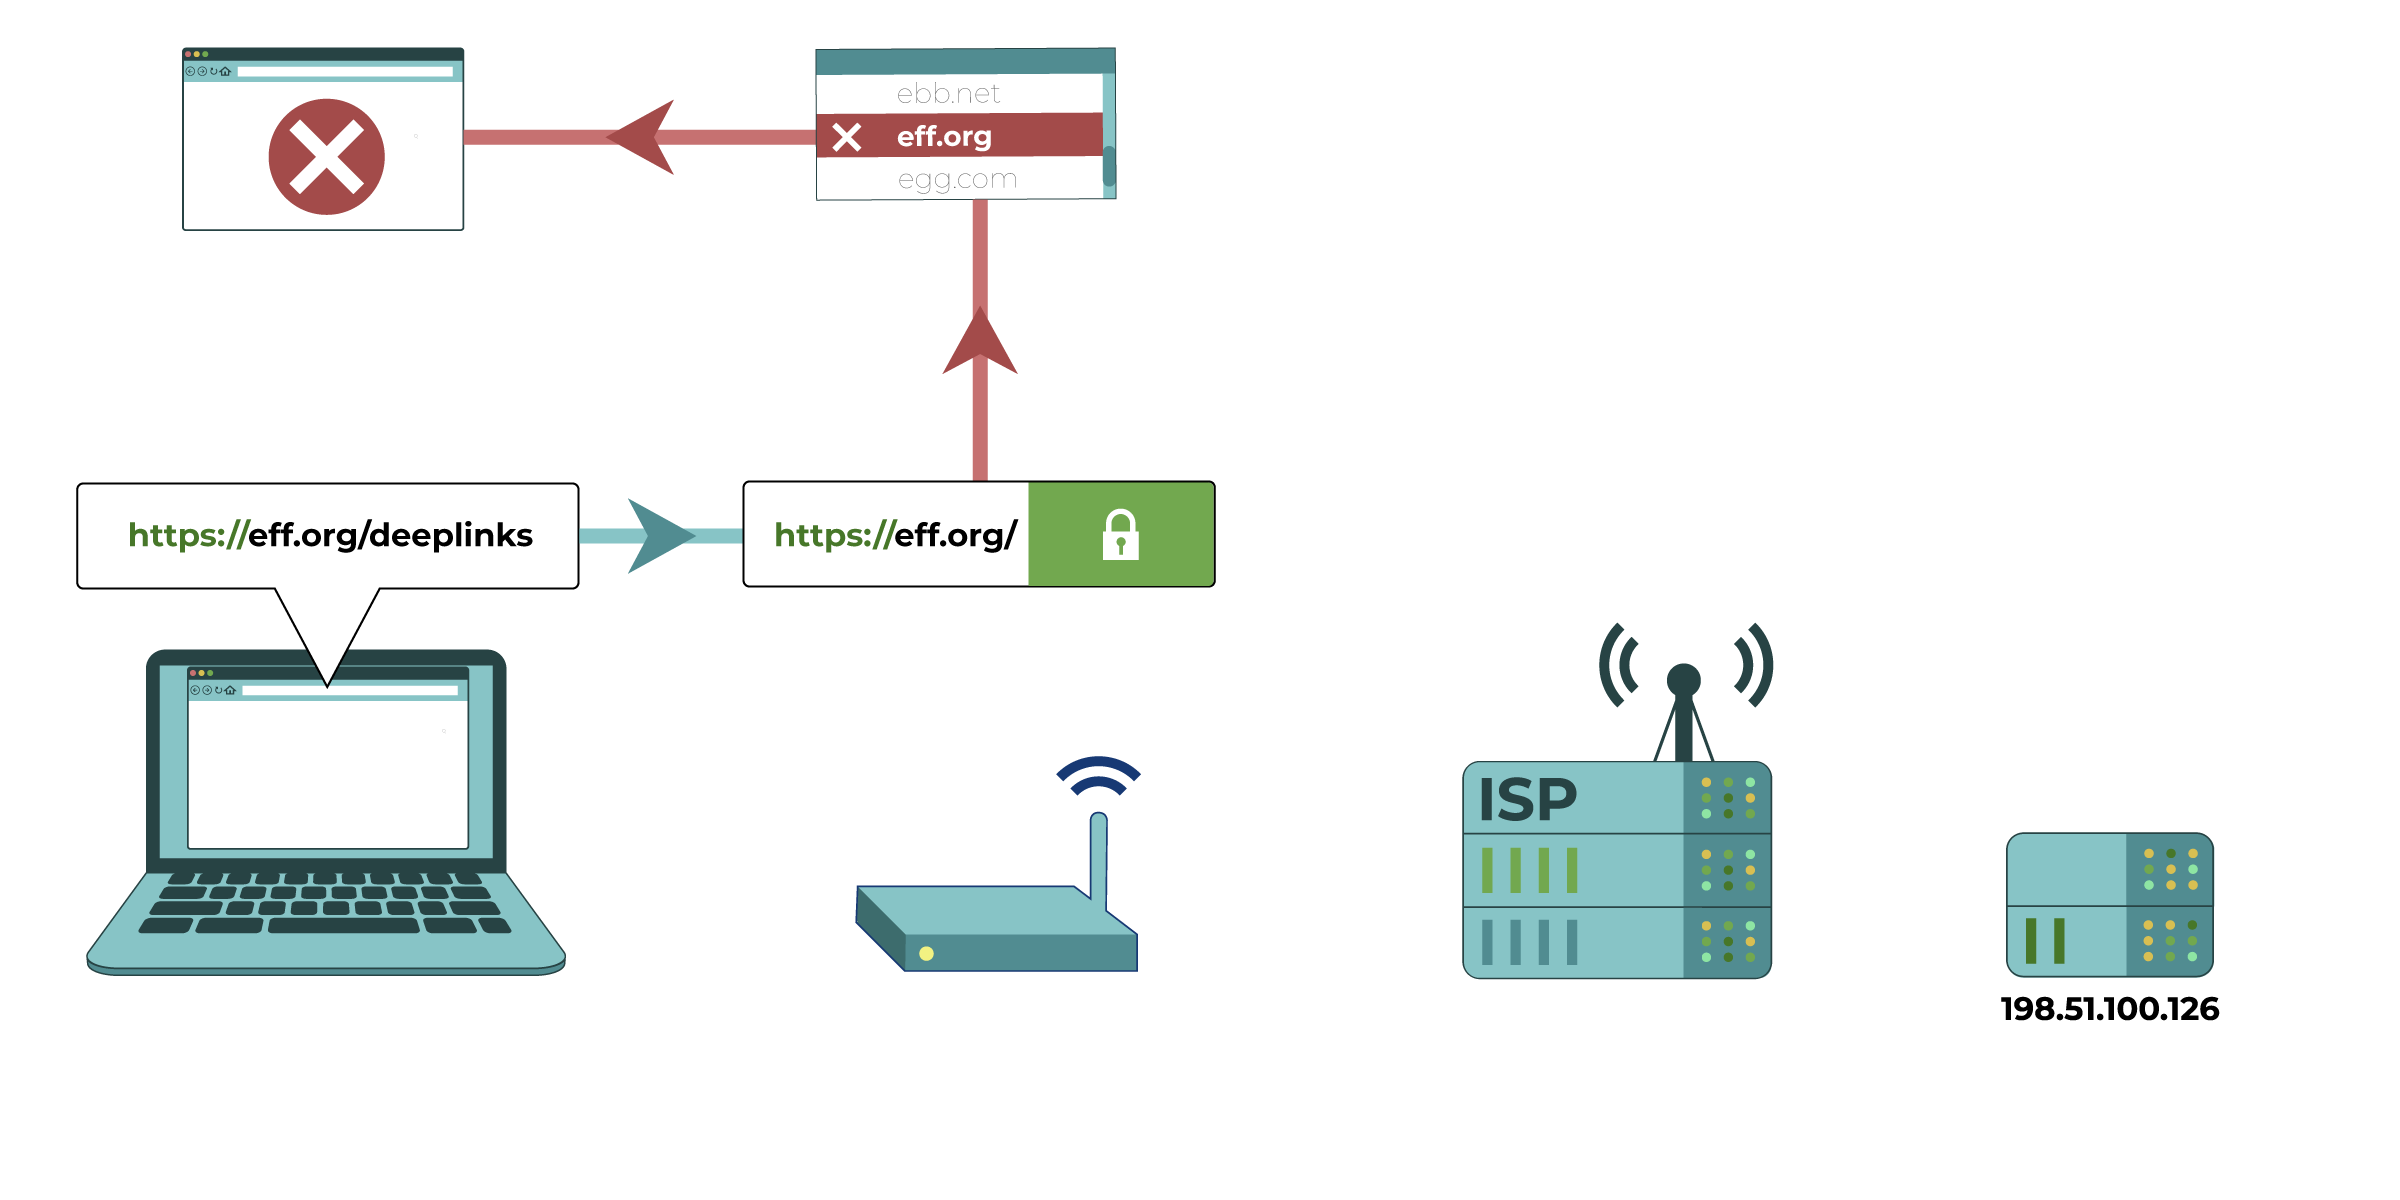 In this diagram, a computer attempts to access eff.org/deeplinks. The network administrator (represented by a router) is able to see domain (eff.org) but not the full website address after the slash. The network administrator can decide which domains to block access to.